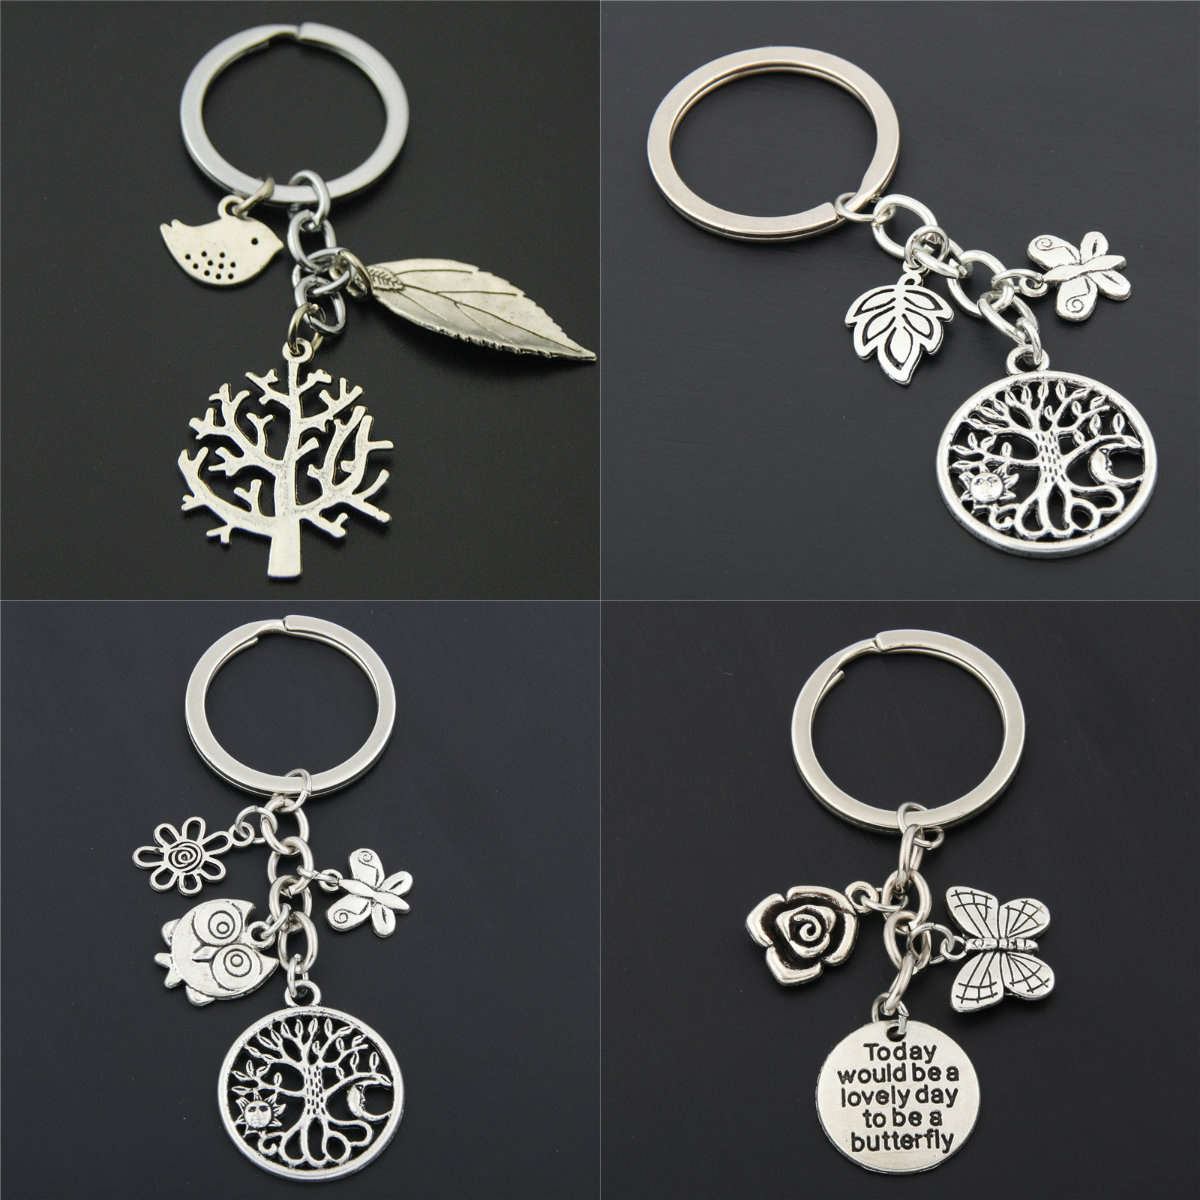 1pc Antique Silver Tree Bird Flower Charms Keychains Leaf Pendant For Bag Keyring For Women Nature Jewelry